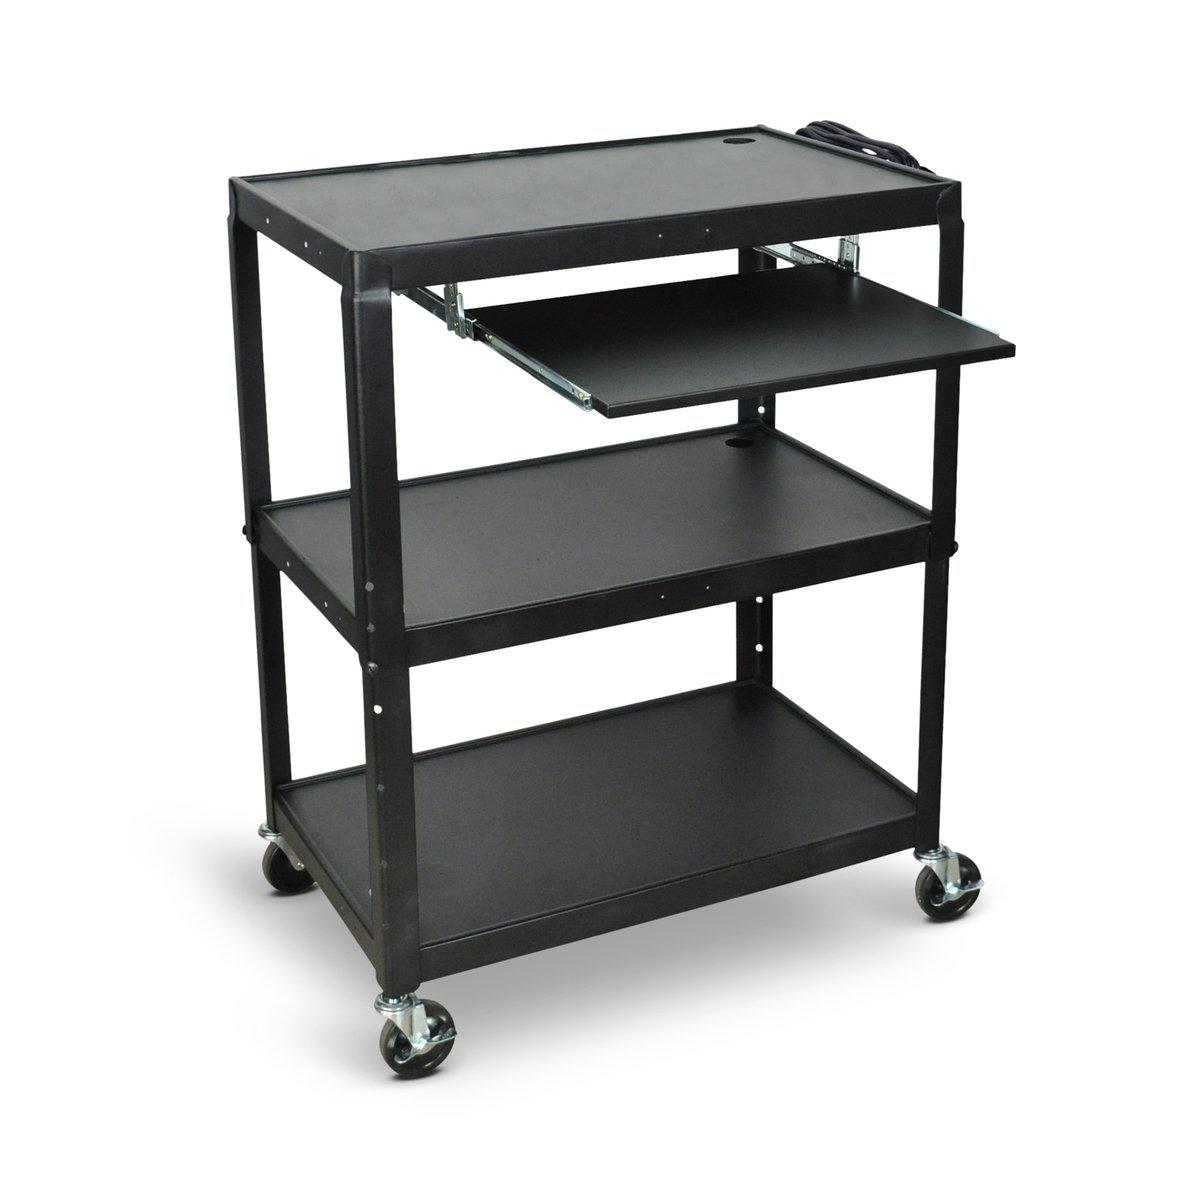 Extra Large Adjustable-Height Steel AV Cart with Pullout Keyboard Tray